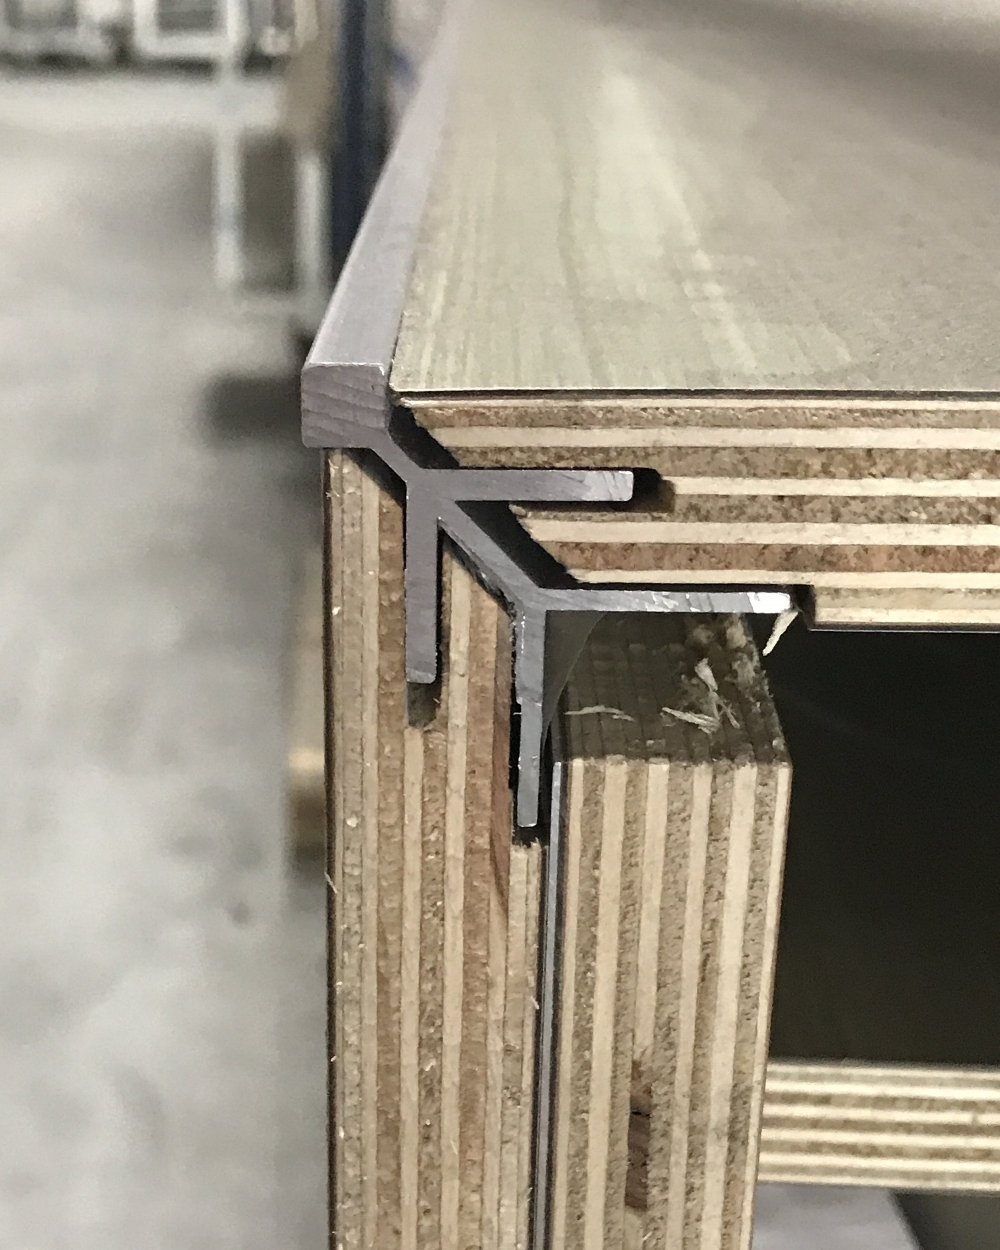 EMI's aluminum corner trim from inside the product.